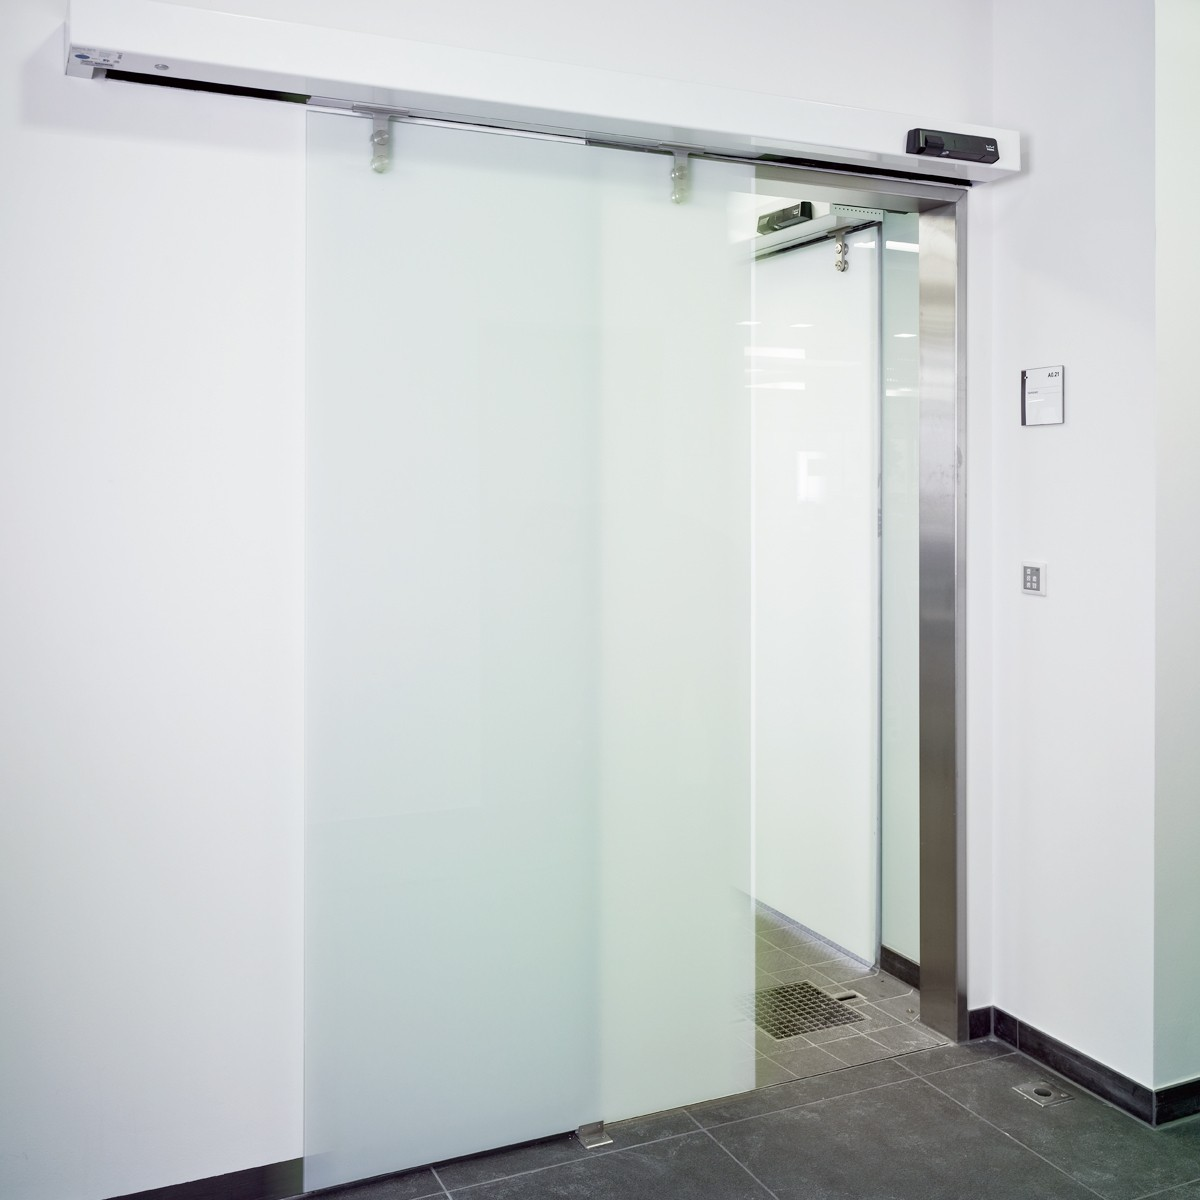 Zhongtai-Aluminium Sliding Doors | Laminated Sliding Glass Door Frameless Glass-1